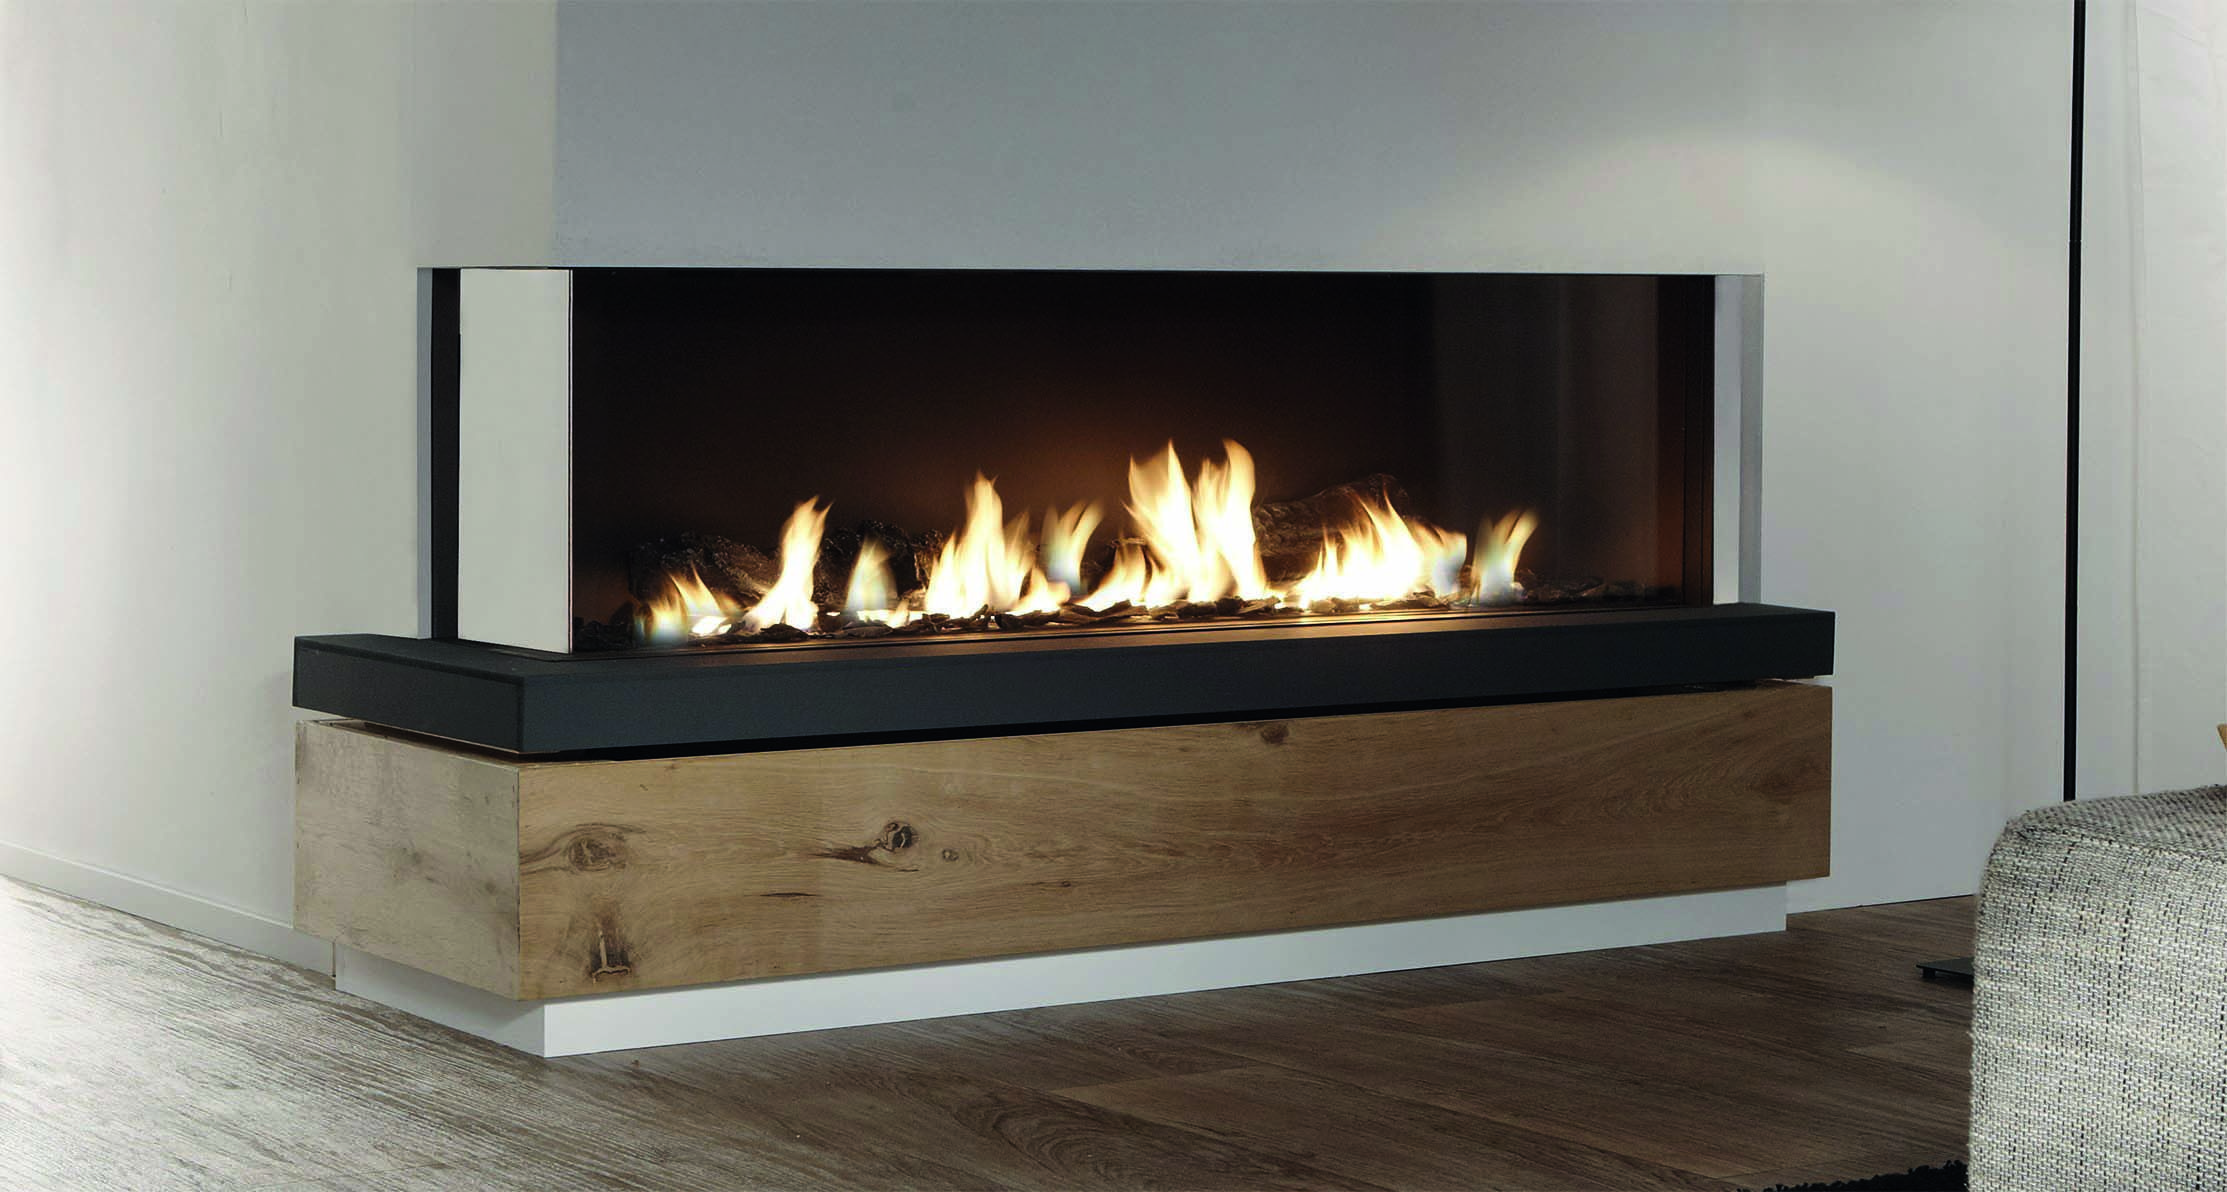 gaskamin von r egg gaskamin gas fireplace fireplace heizkamin kamin ofen wohnzimmer. Black Bedroom Furniture Sets. Home Design Ideas